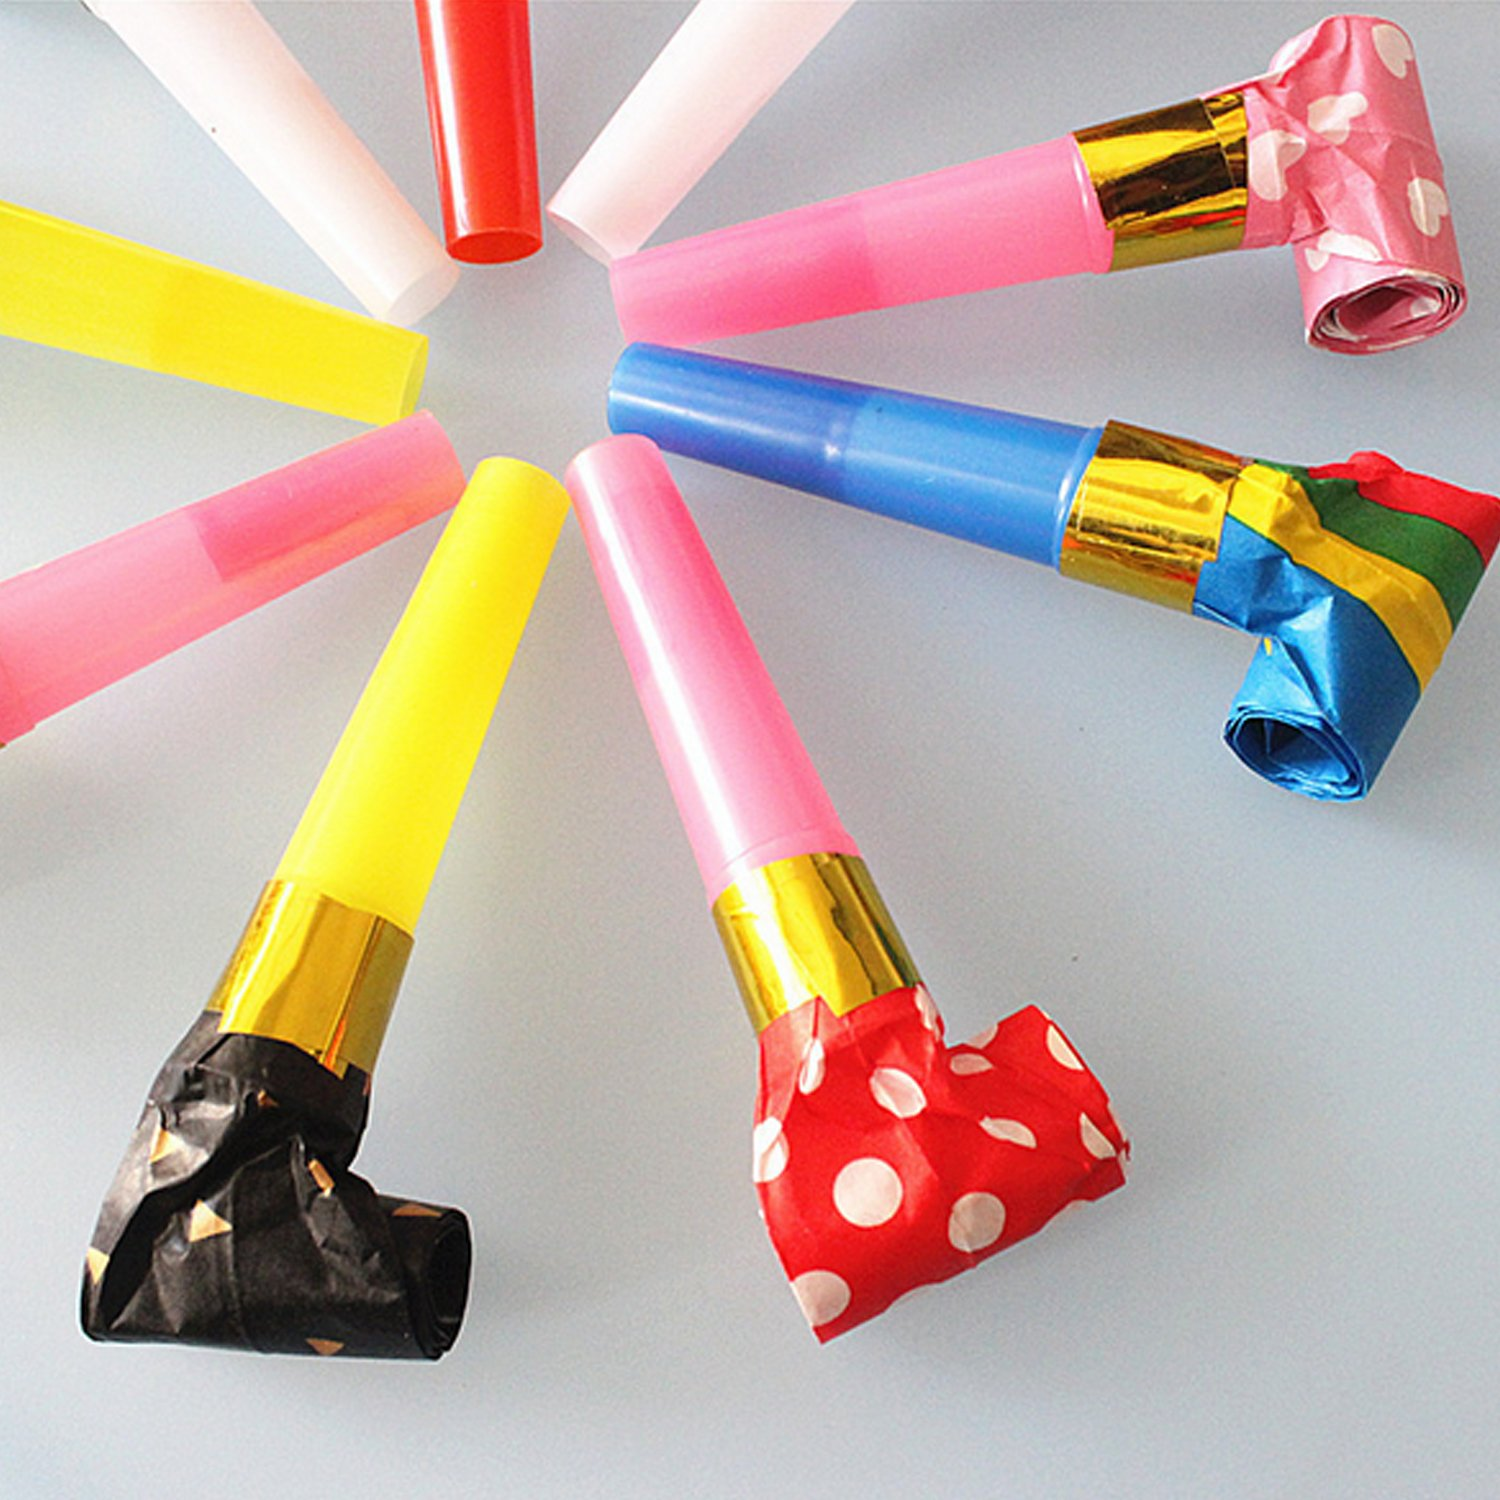 20pcs Party Horns Noisemakers Blow Outs Blowouts Whistles Toys for Birthday Party Favors Random Style Color